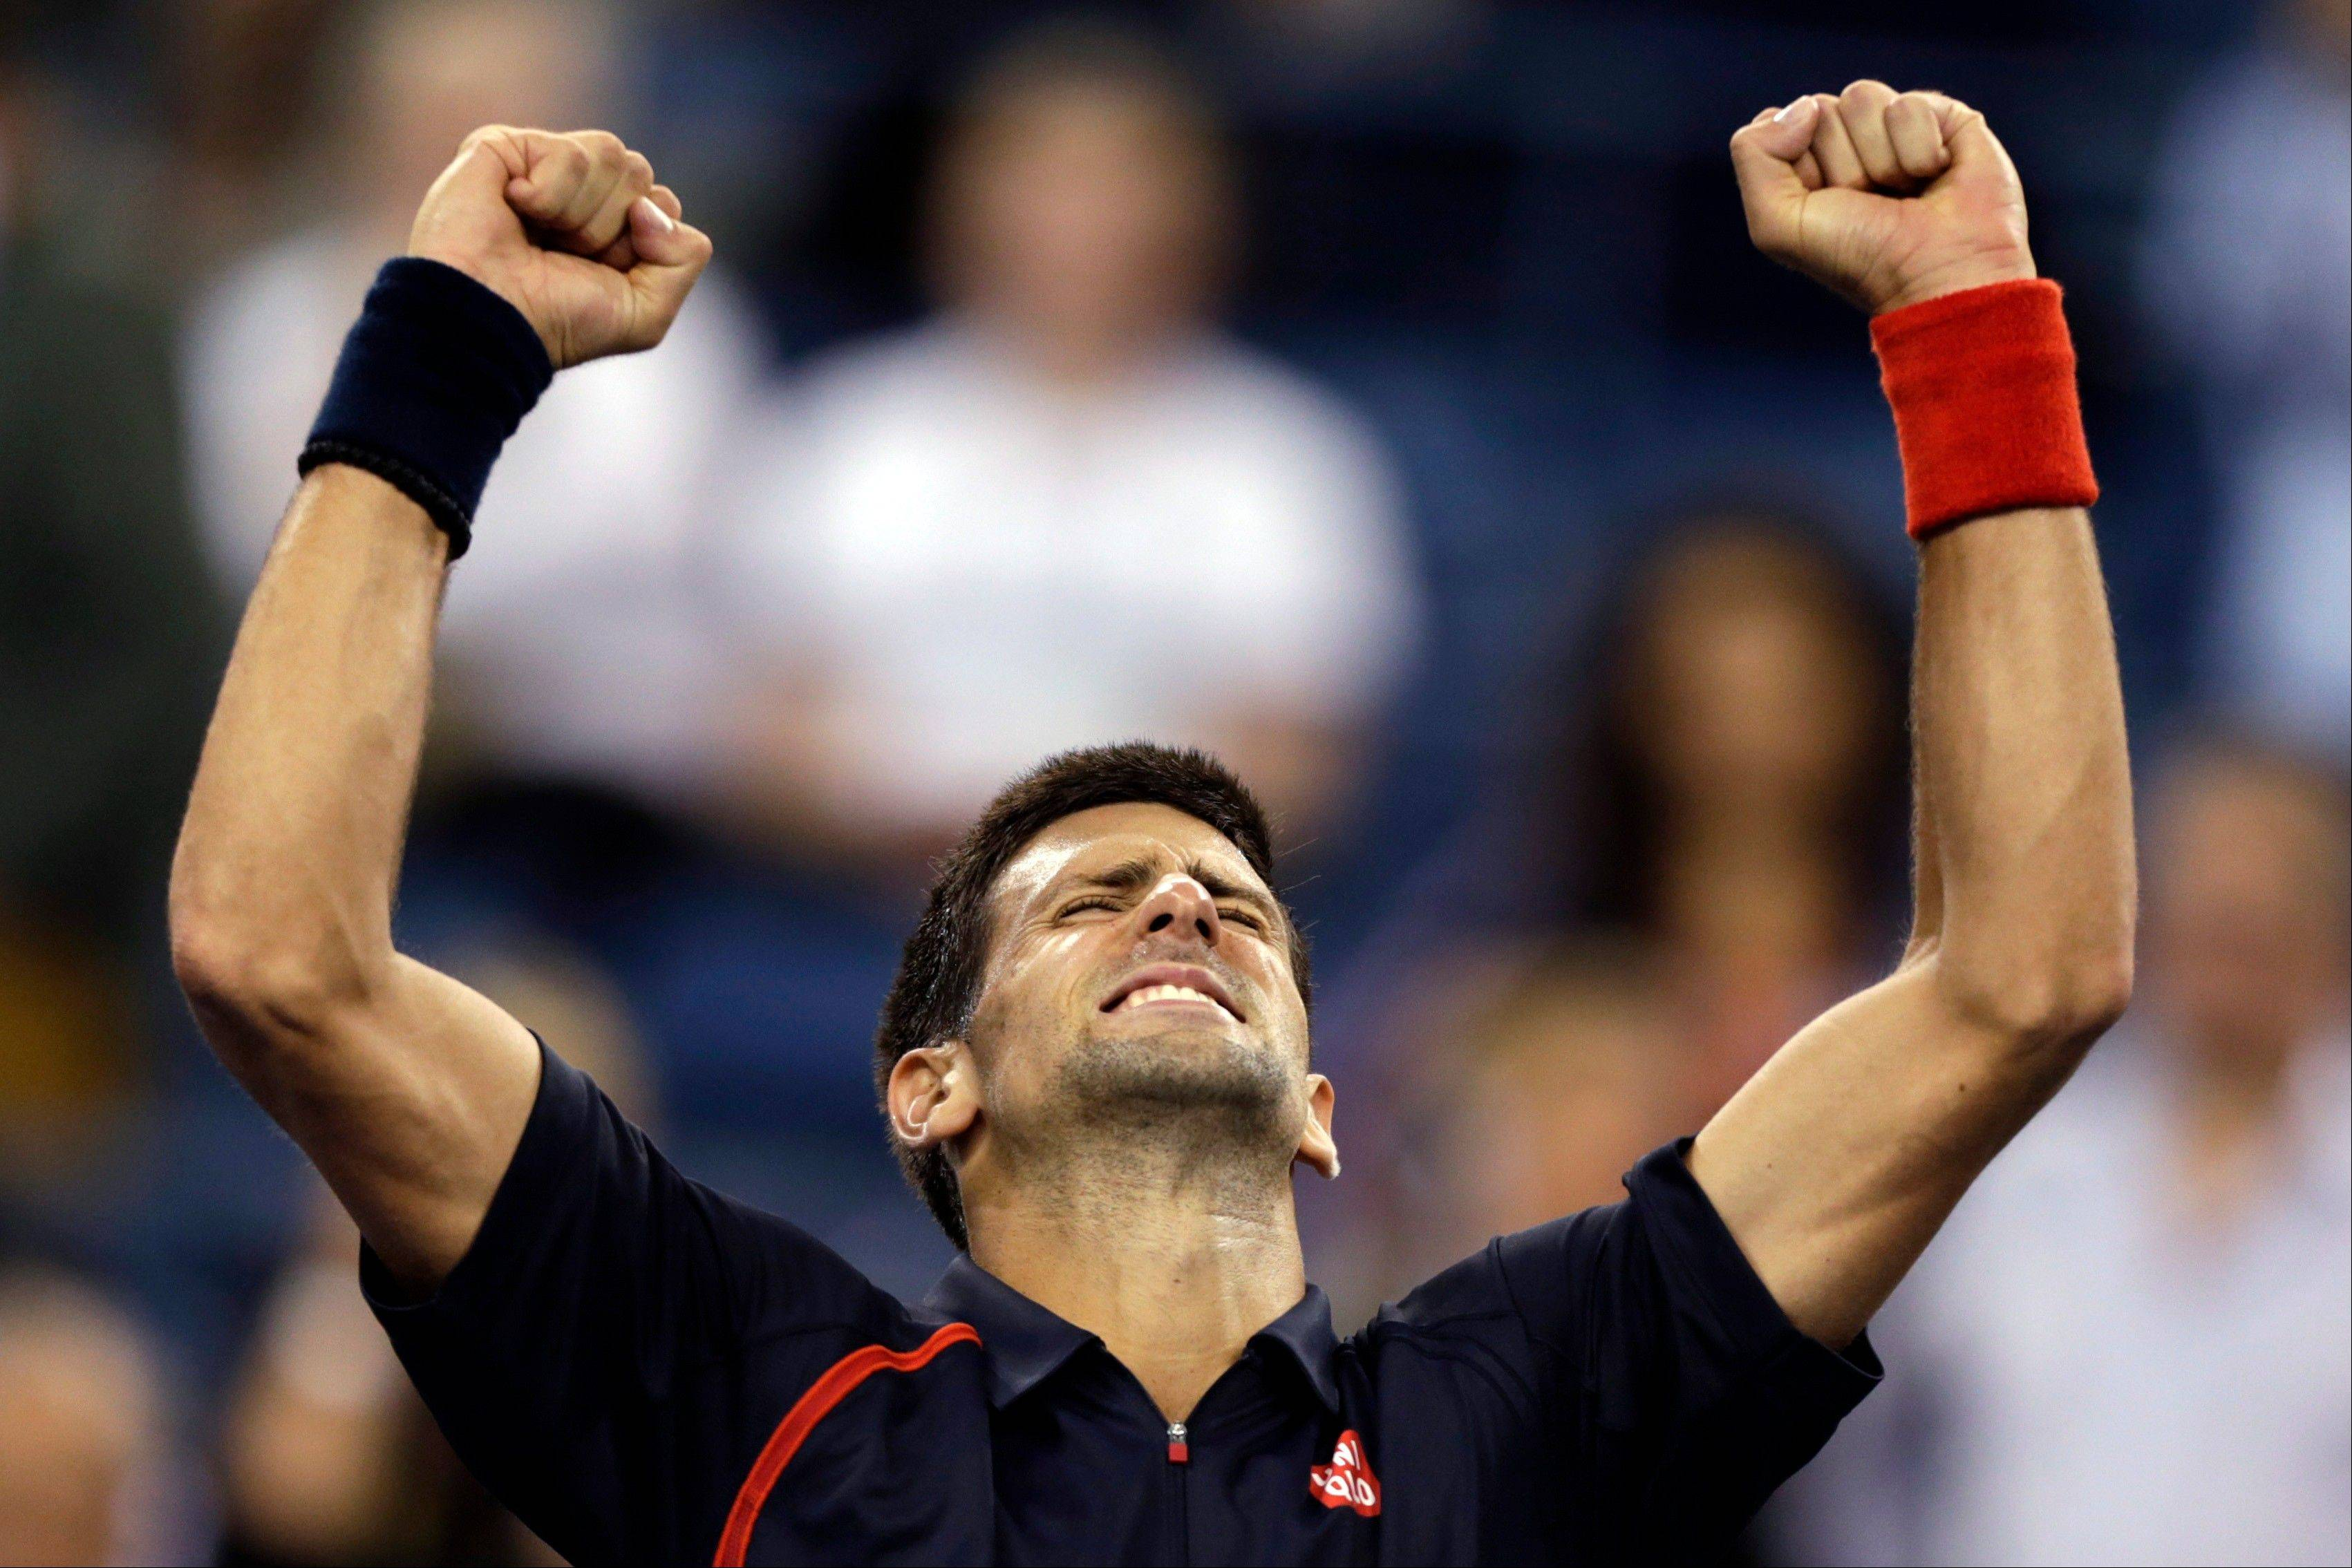 Novak Djokovic celebrates after defeating Juan Martin del Potro in the quarterfinal round of play Thursday at the U.S. Open in New York.